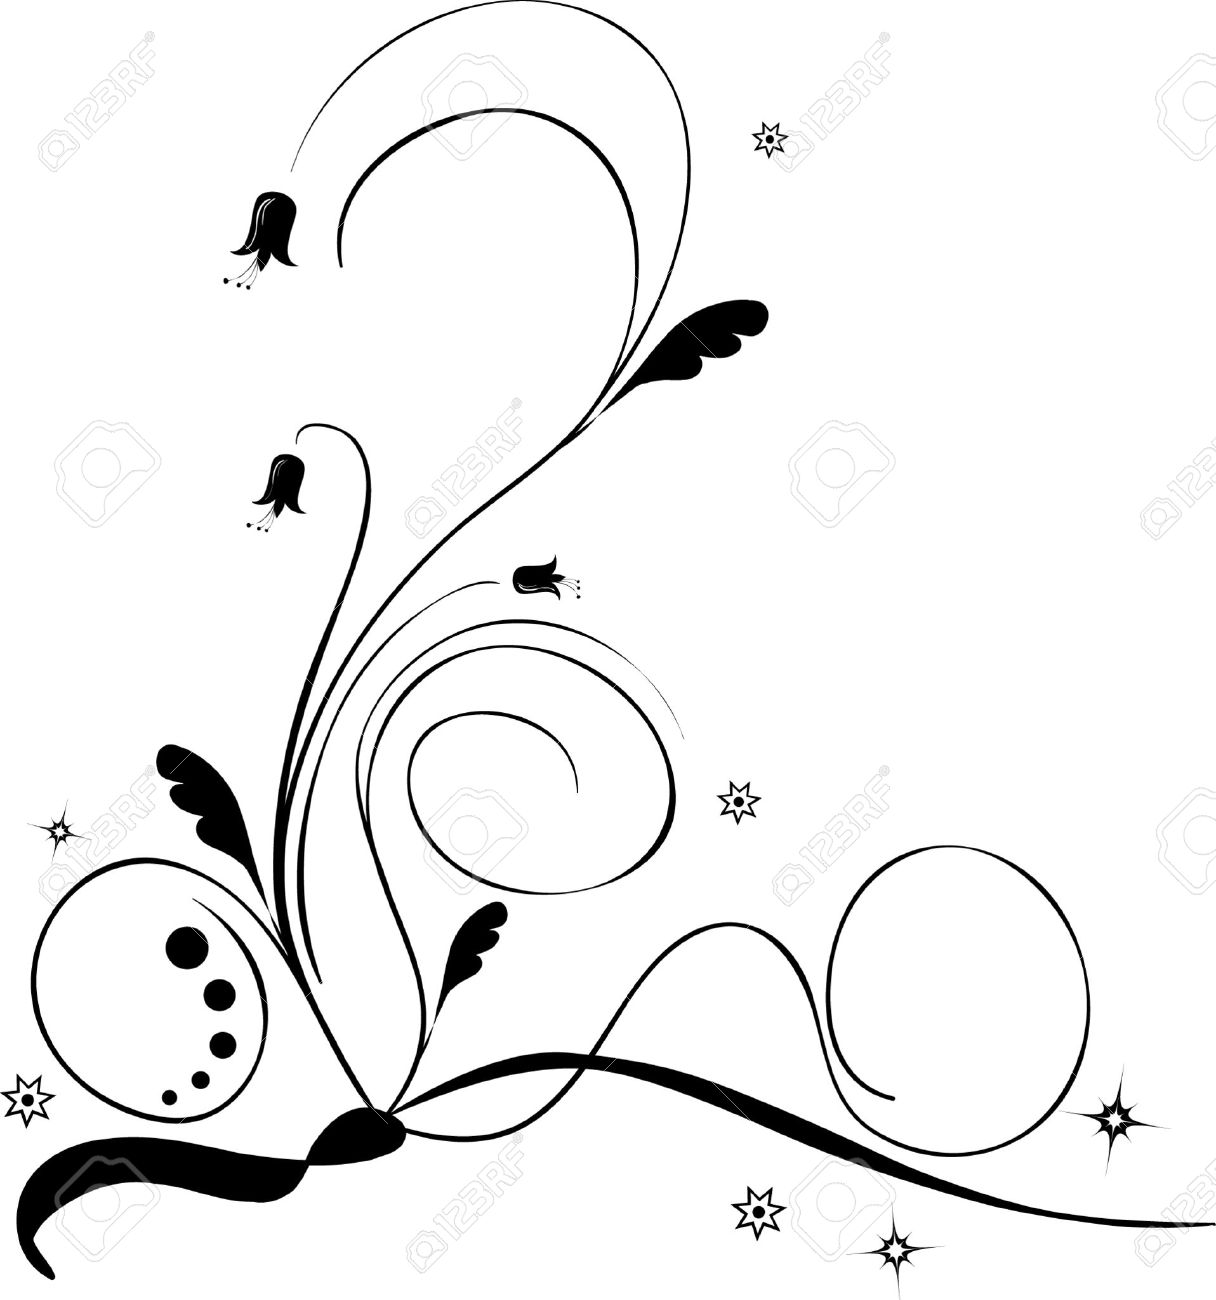 Vector illustration of a black and white floral pattern Stock Vector - 4004629